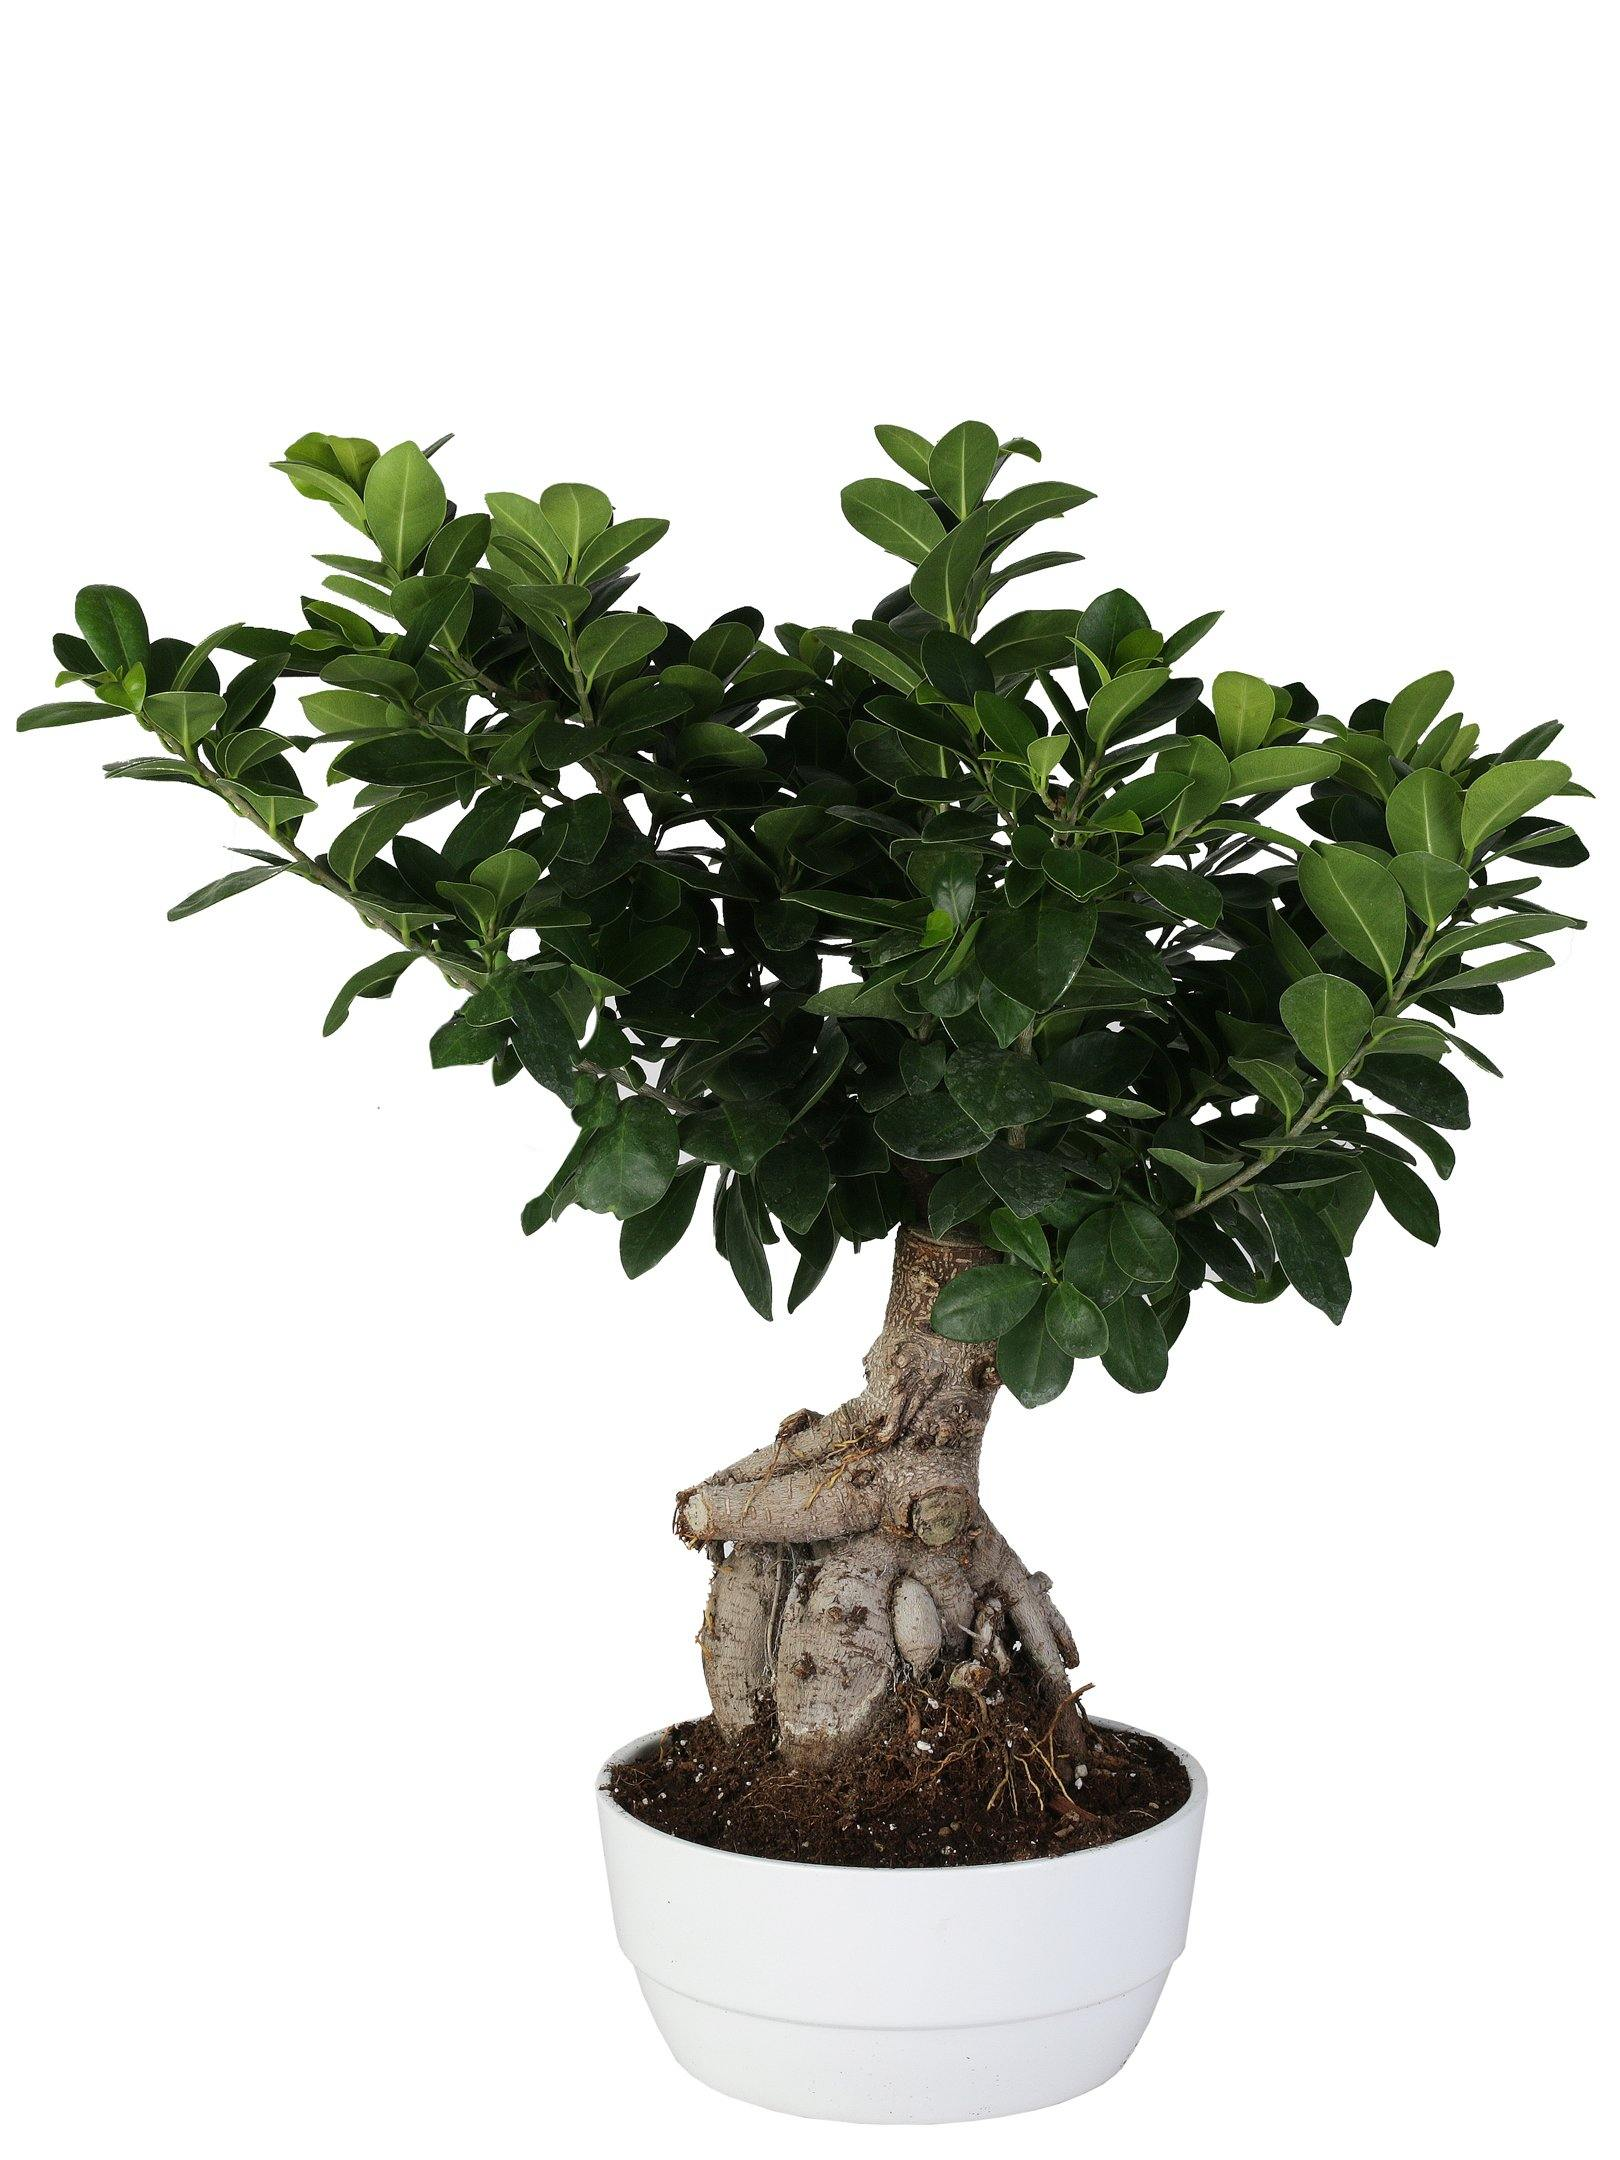 "Bonsai Ficus Microcarpa ""Ginseng"" Ceramic Round Diameter 20 Cm, Height 55 Cm-Casita Hermosa"